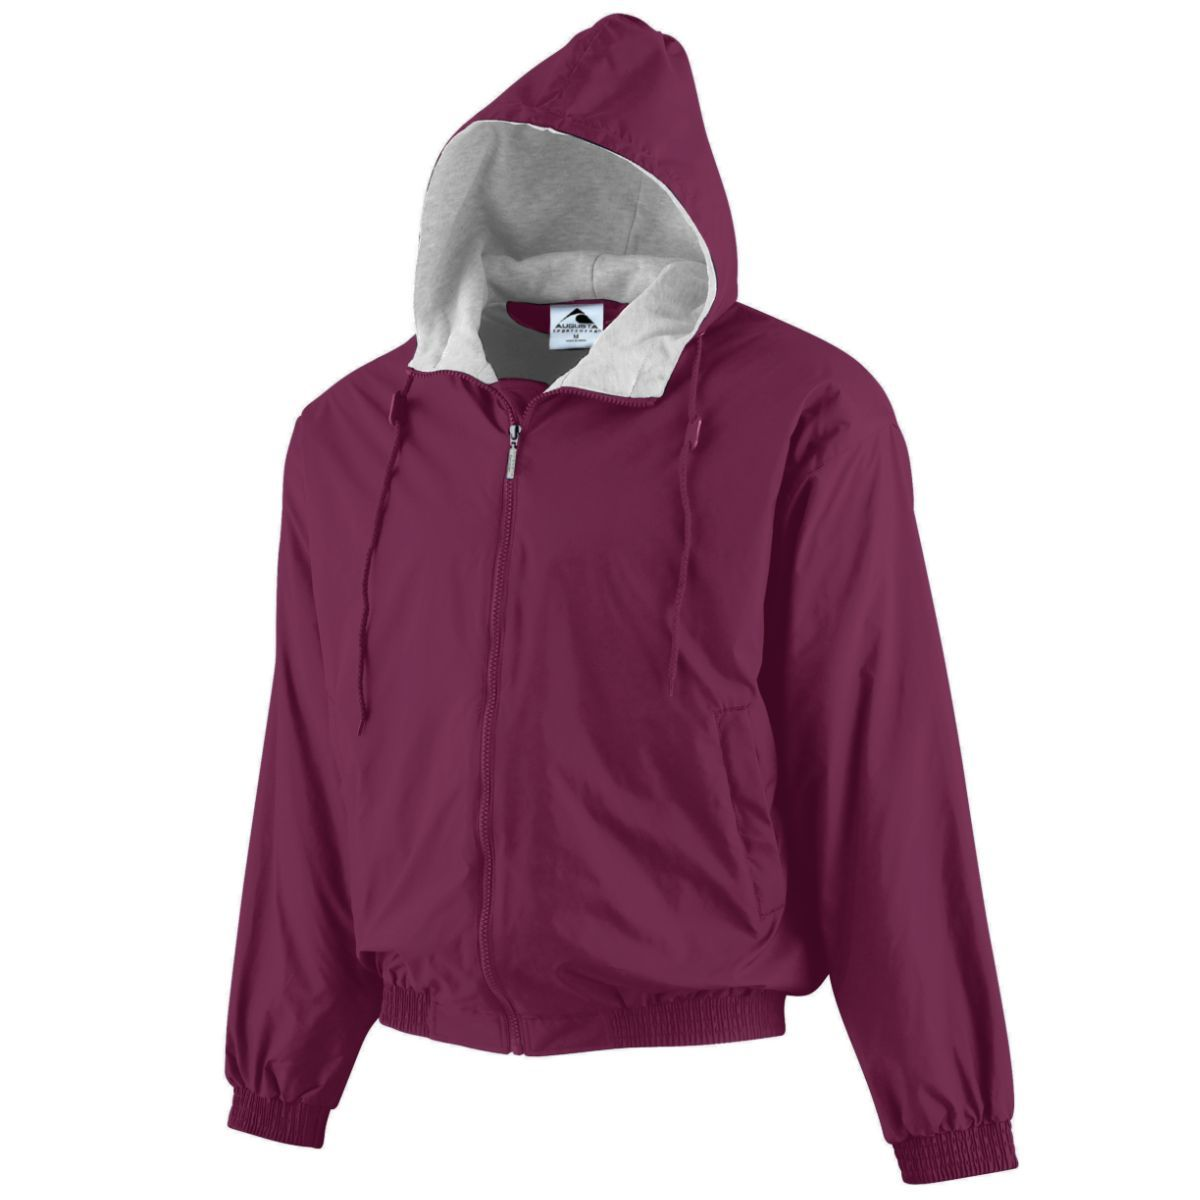 Hooded Taffeta Jacket/Fleece Lined - MAROON